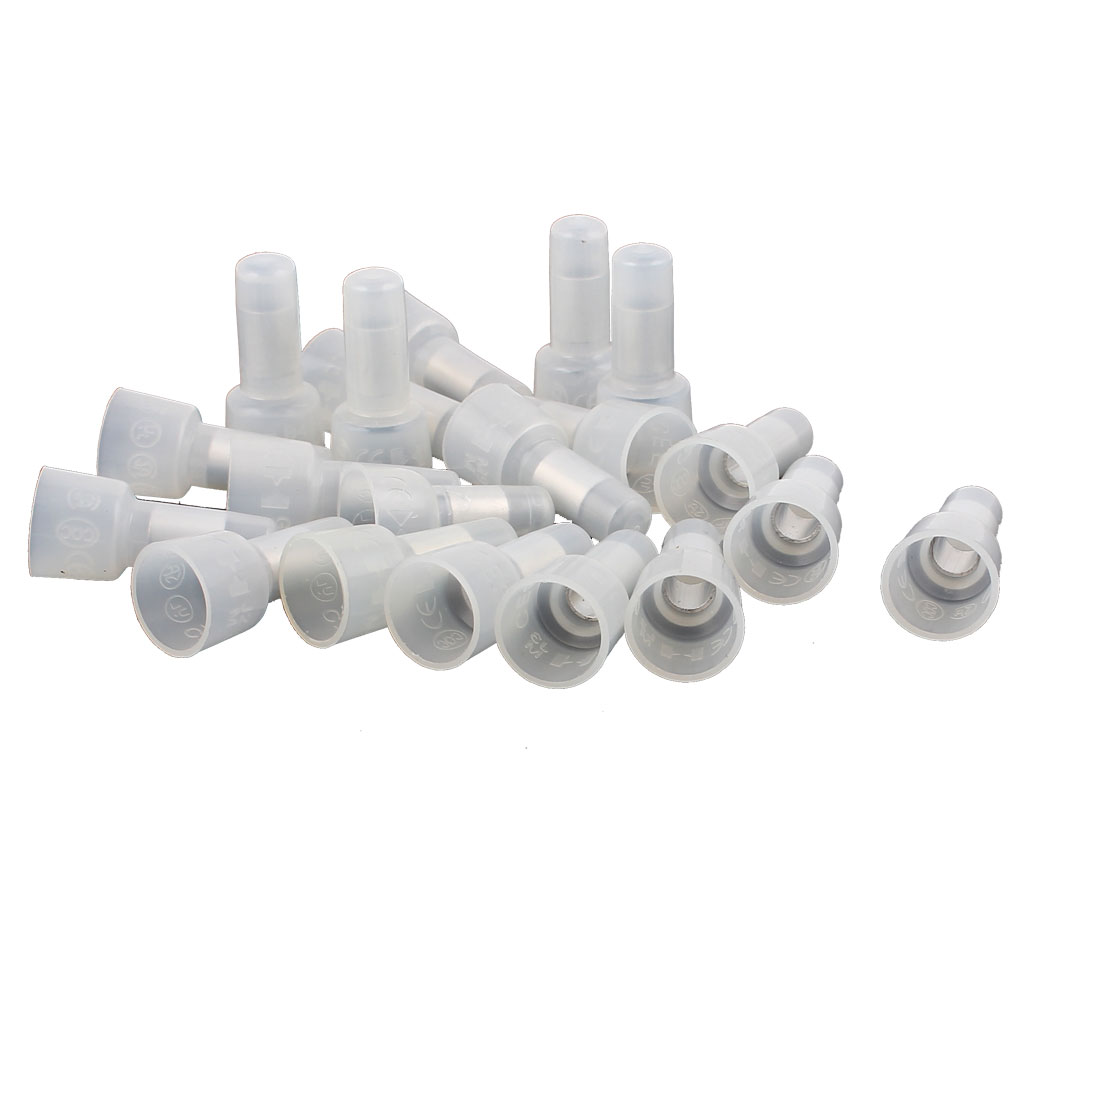 20Pcs 12-10 AWG 4mm Metal Inner Dia Tin-plated Tube Closed End Wire Connectors